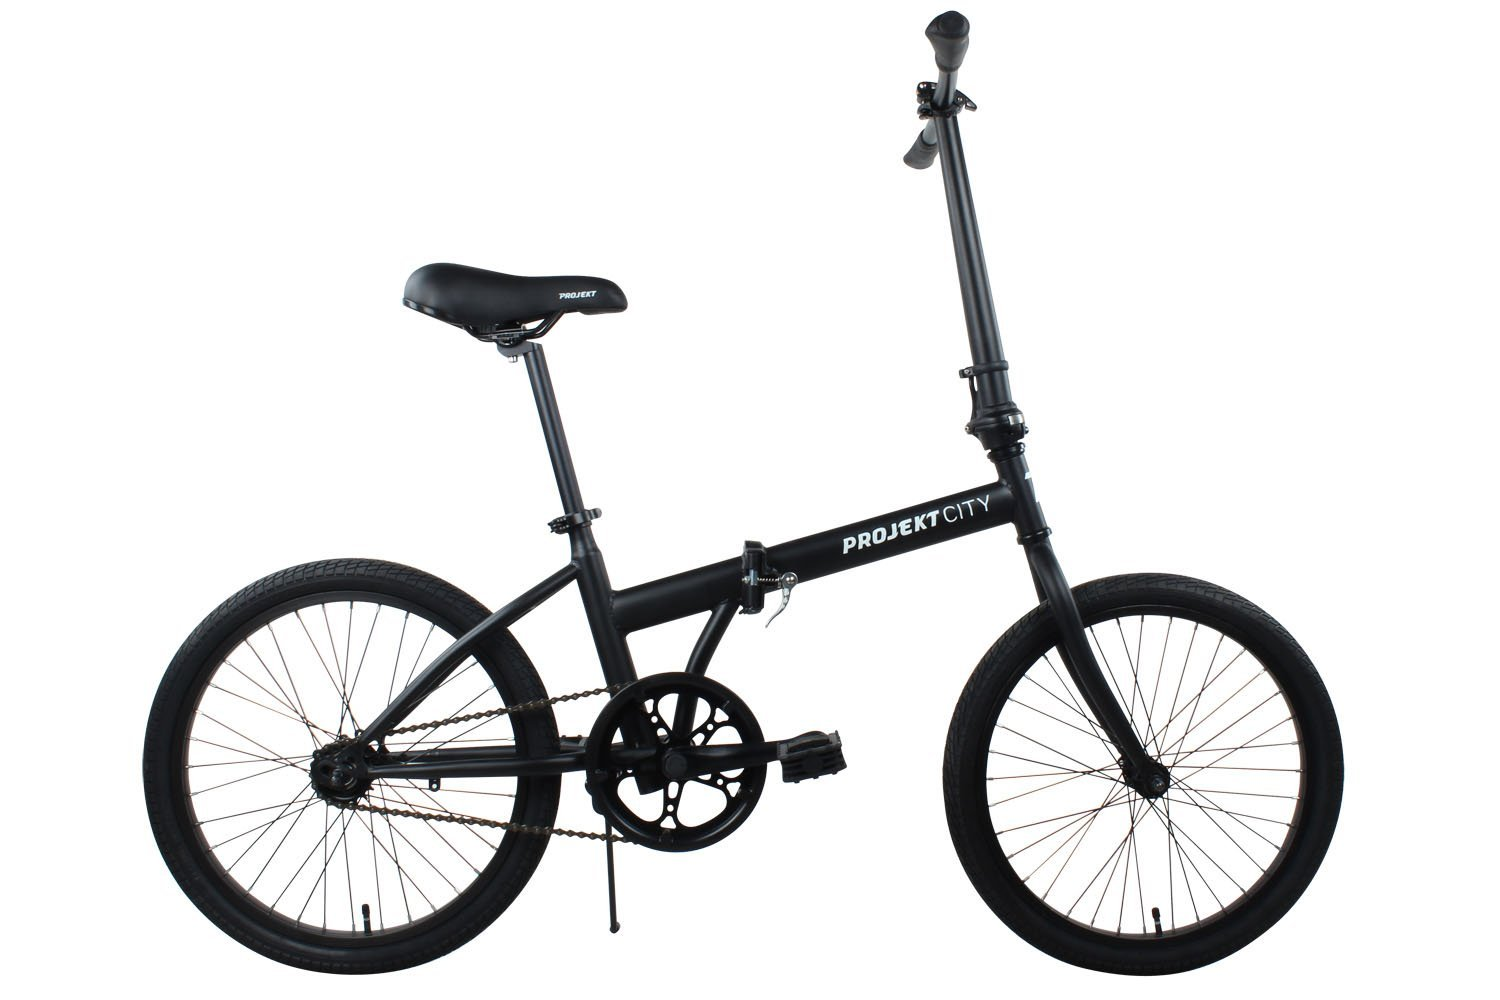 Projekt City - 20 inch City Bike Compact Folding Single Speed Uno College Bicycle